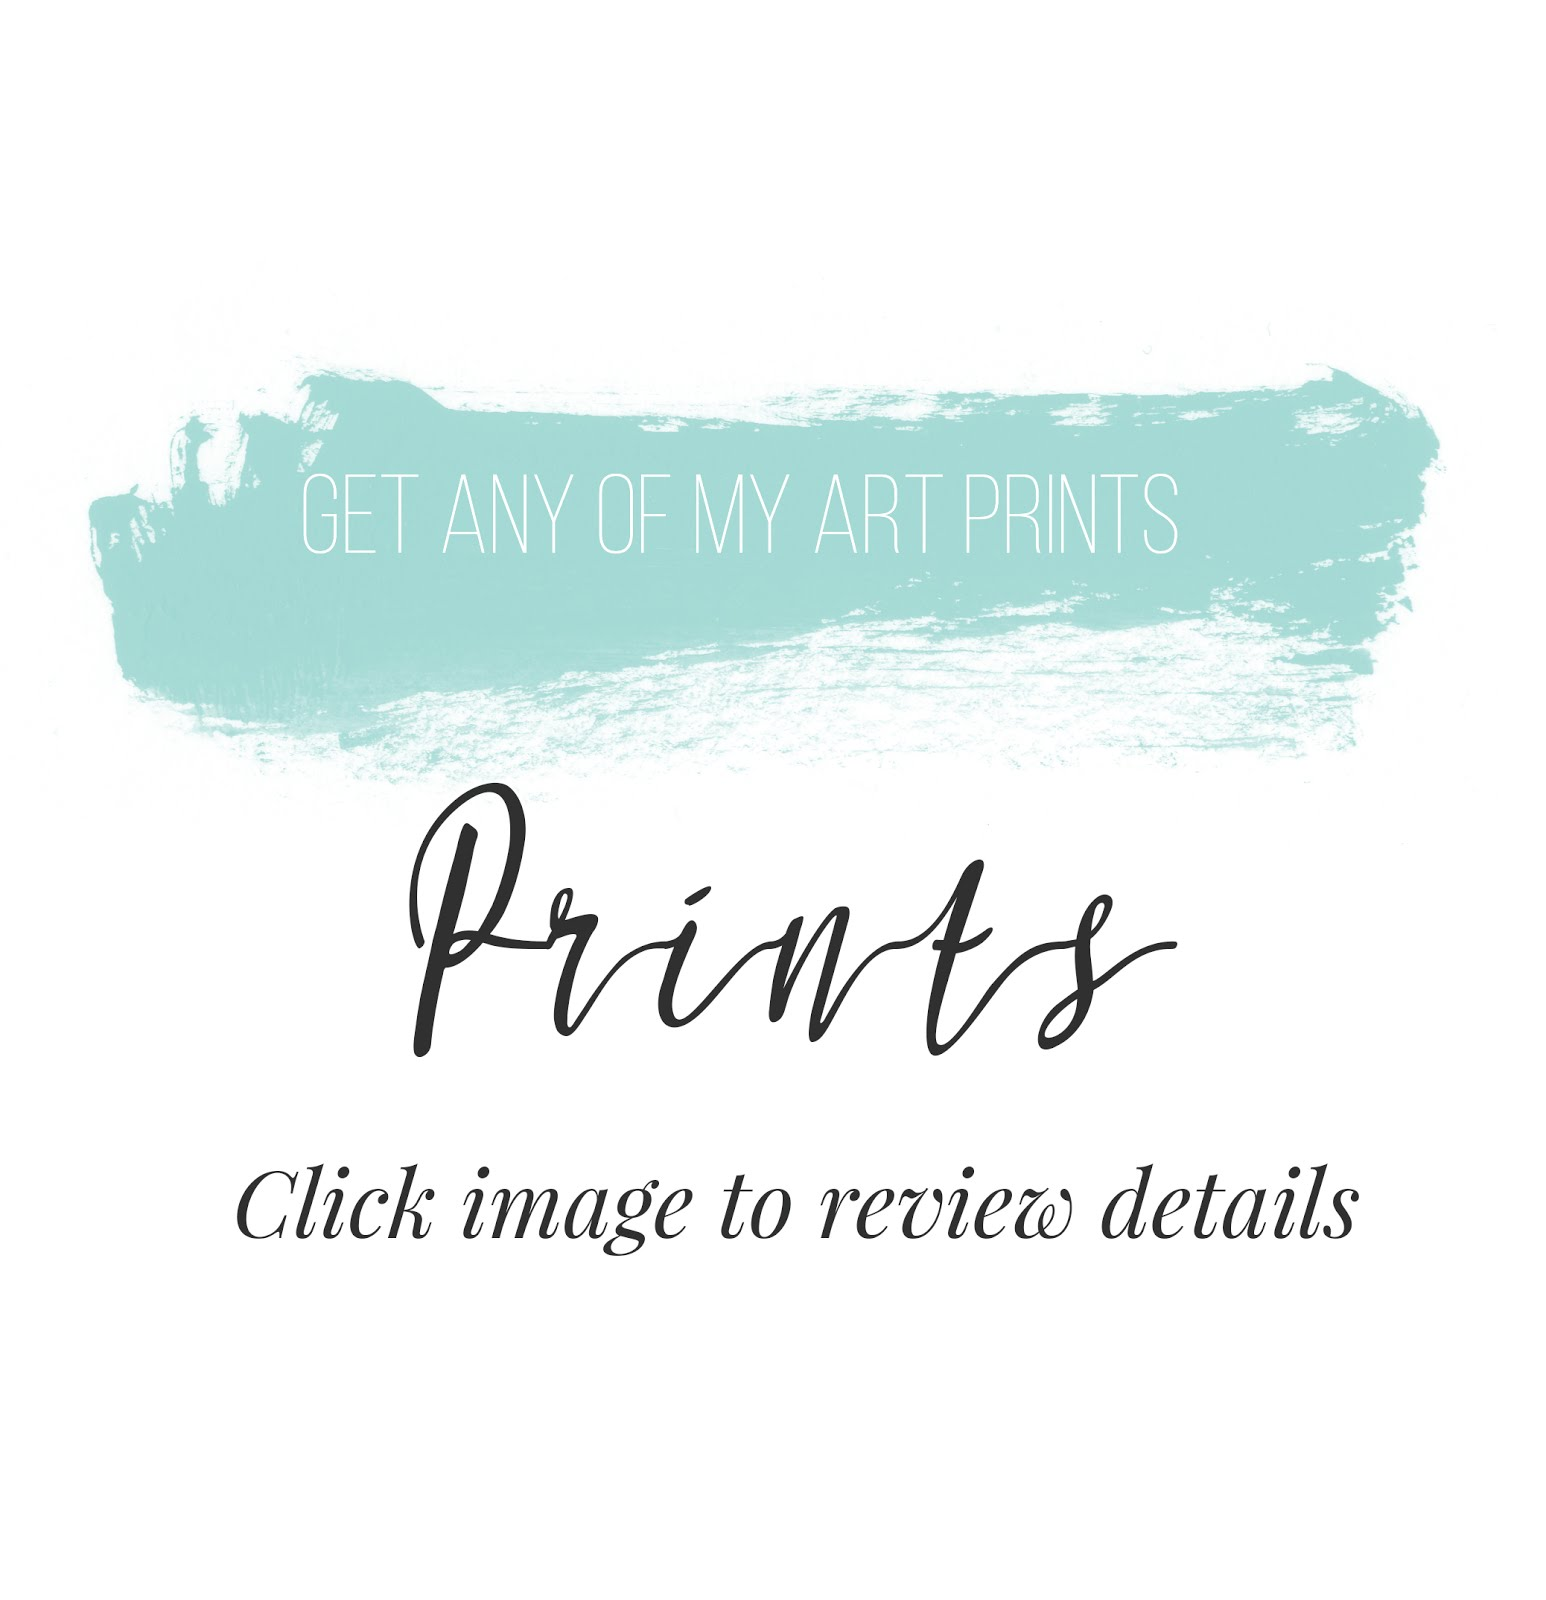 Get any of my Art Prints